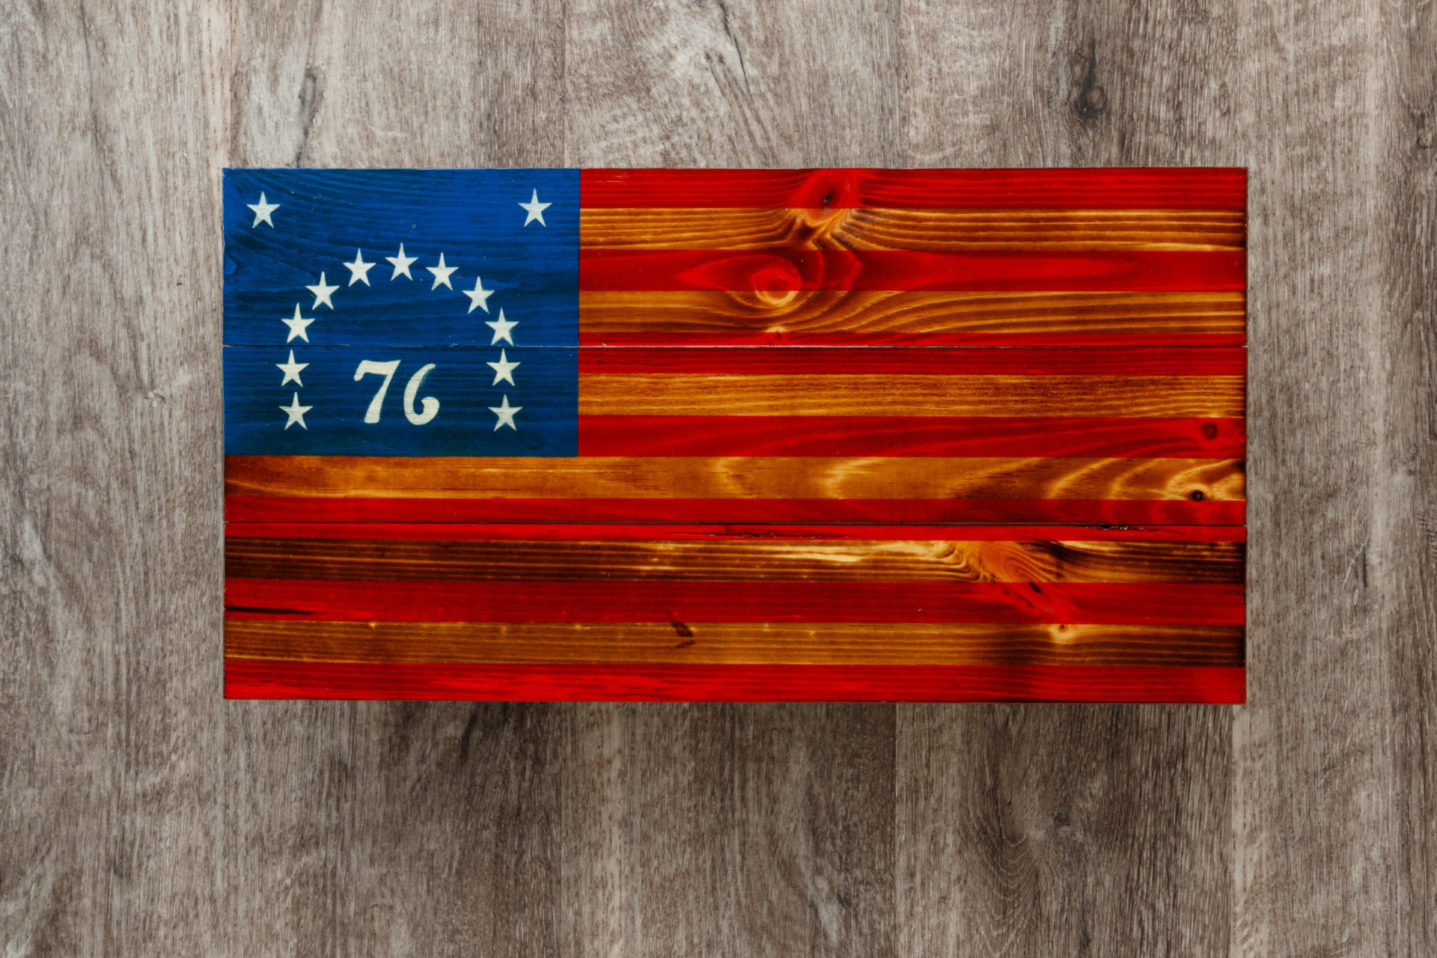 Bicentennial wooden American flag wall art